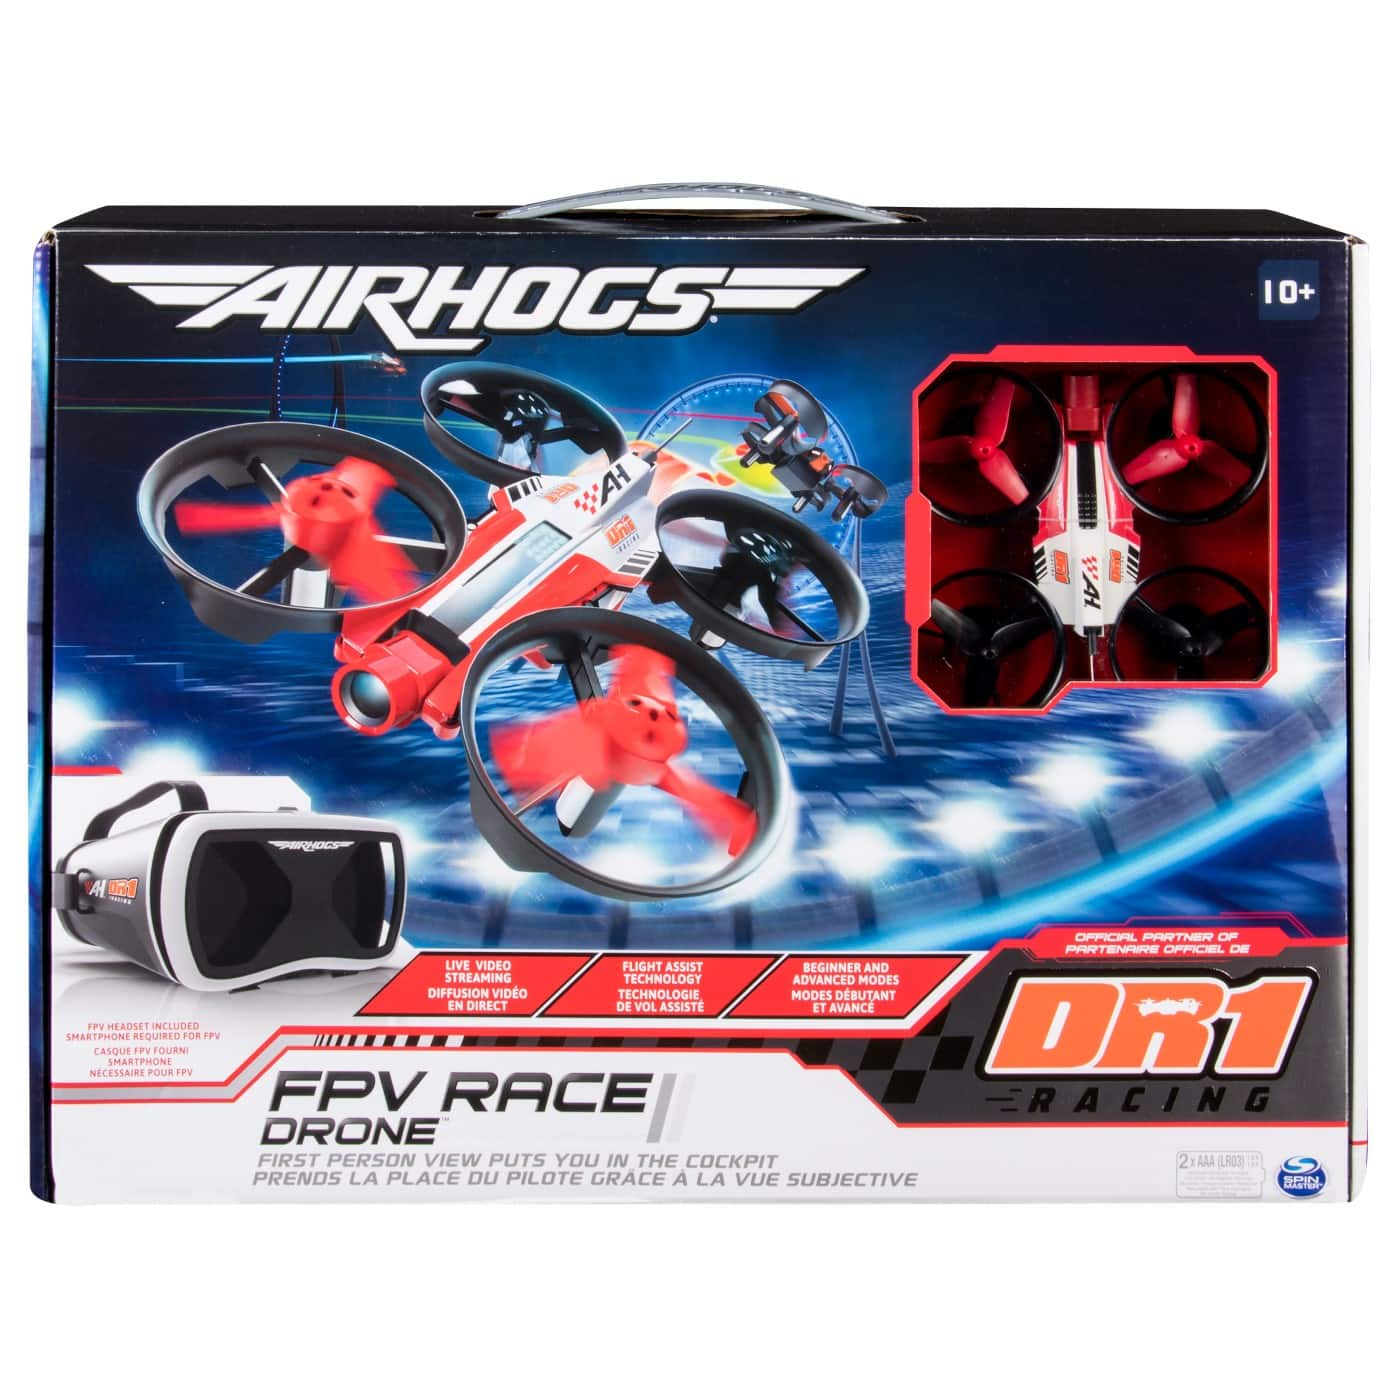 Air Hogs:Race Drone with Camera $38.49@target.com